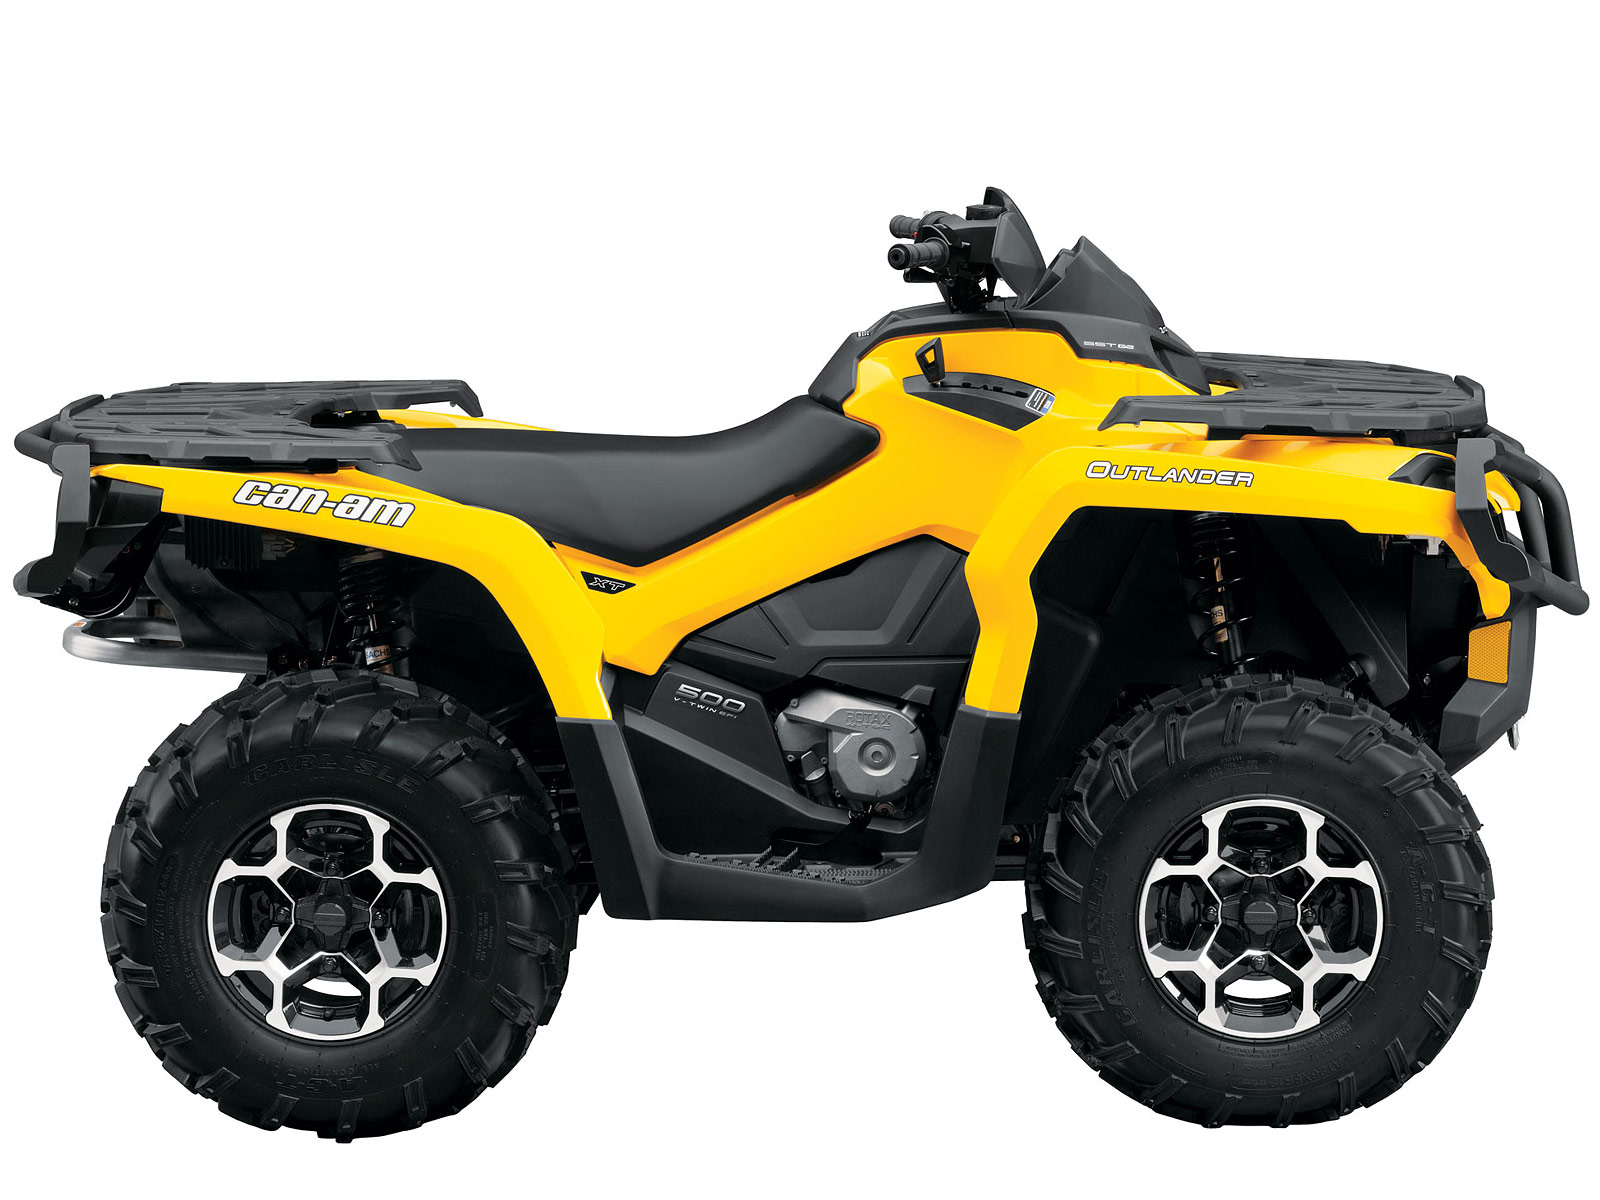 2013 can am outlander xt 500 atv pictures and specifications. Black Bedroom Furniture Sets. Home Design Ideas